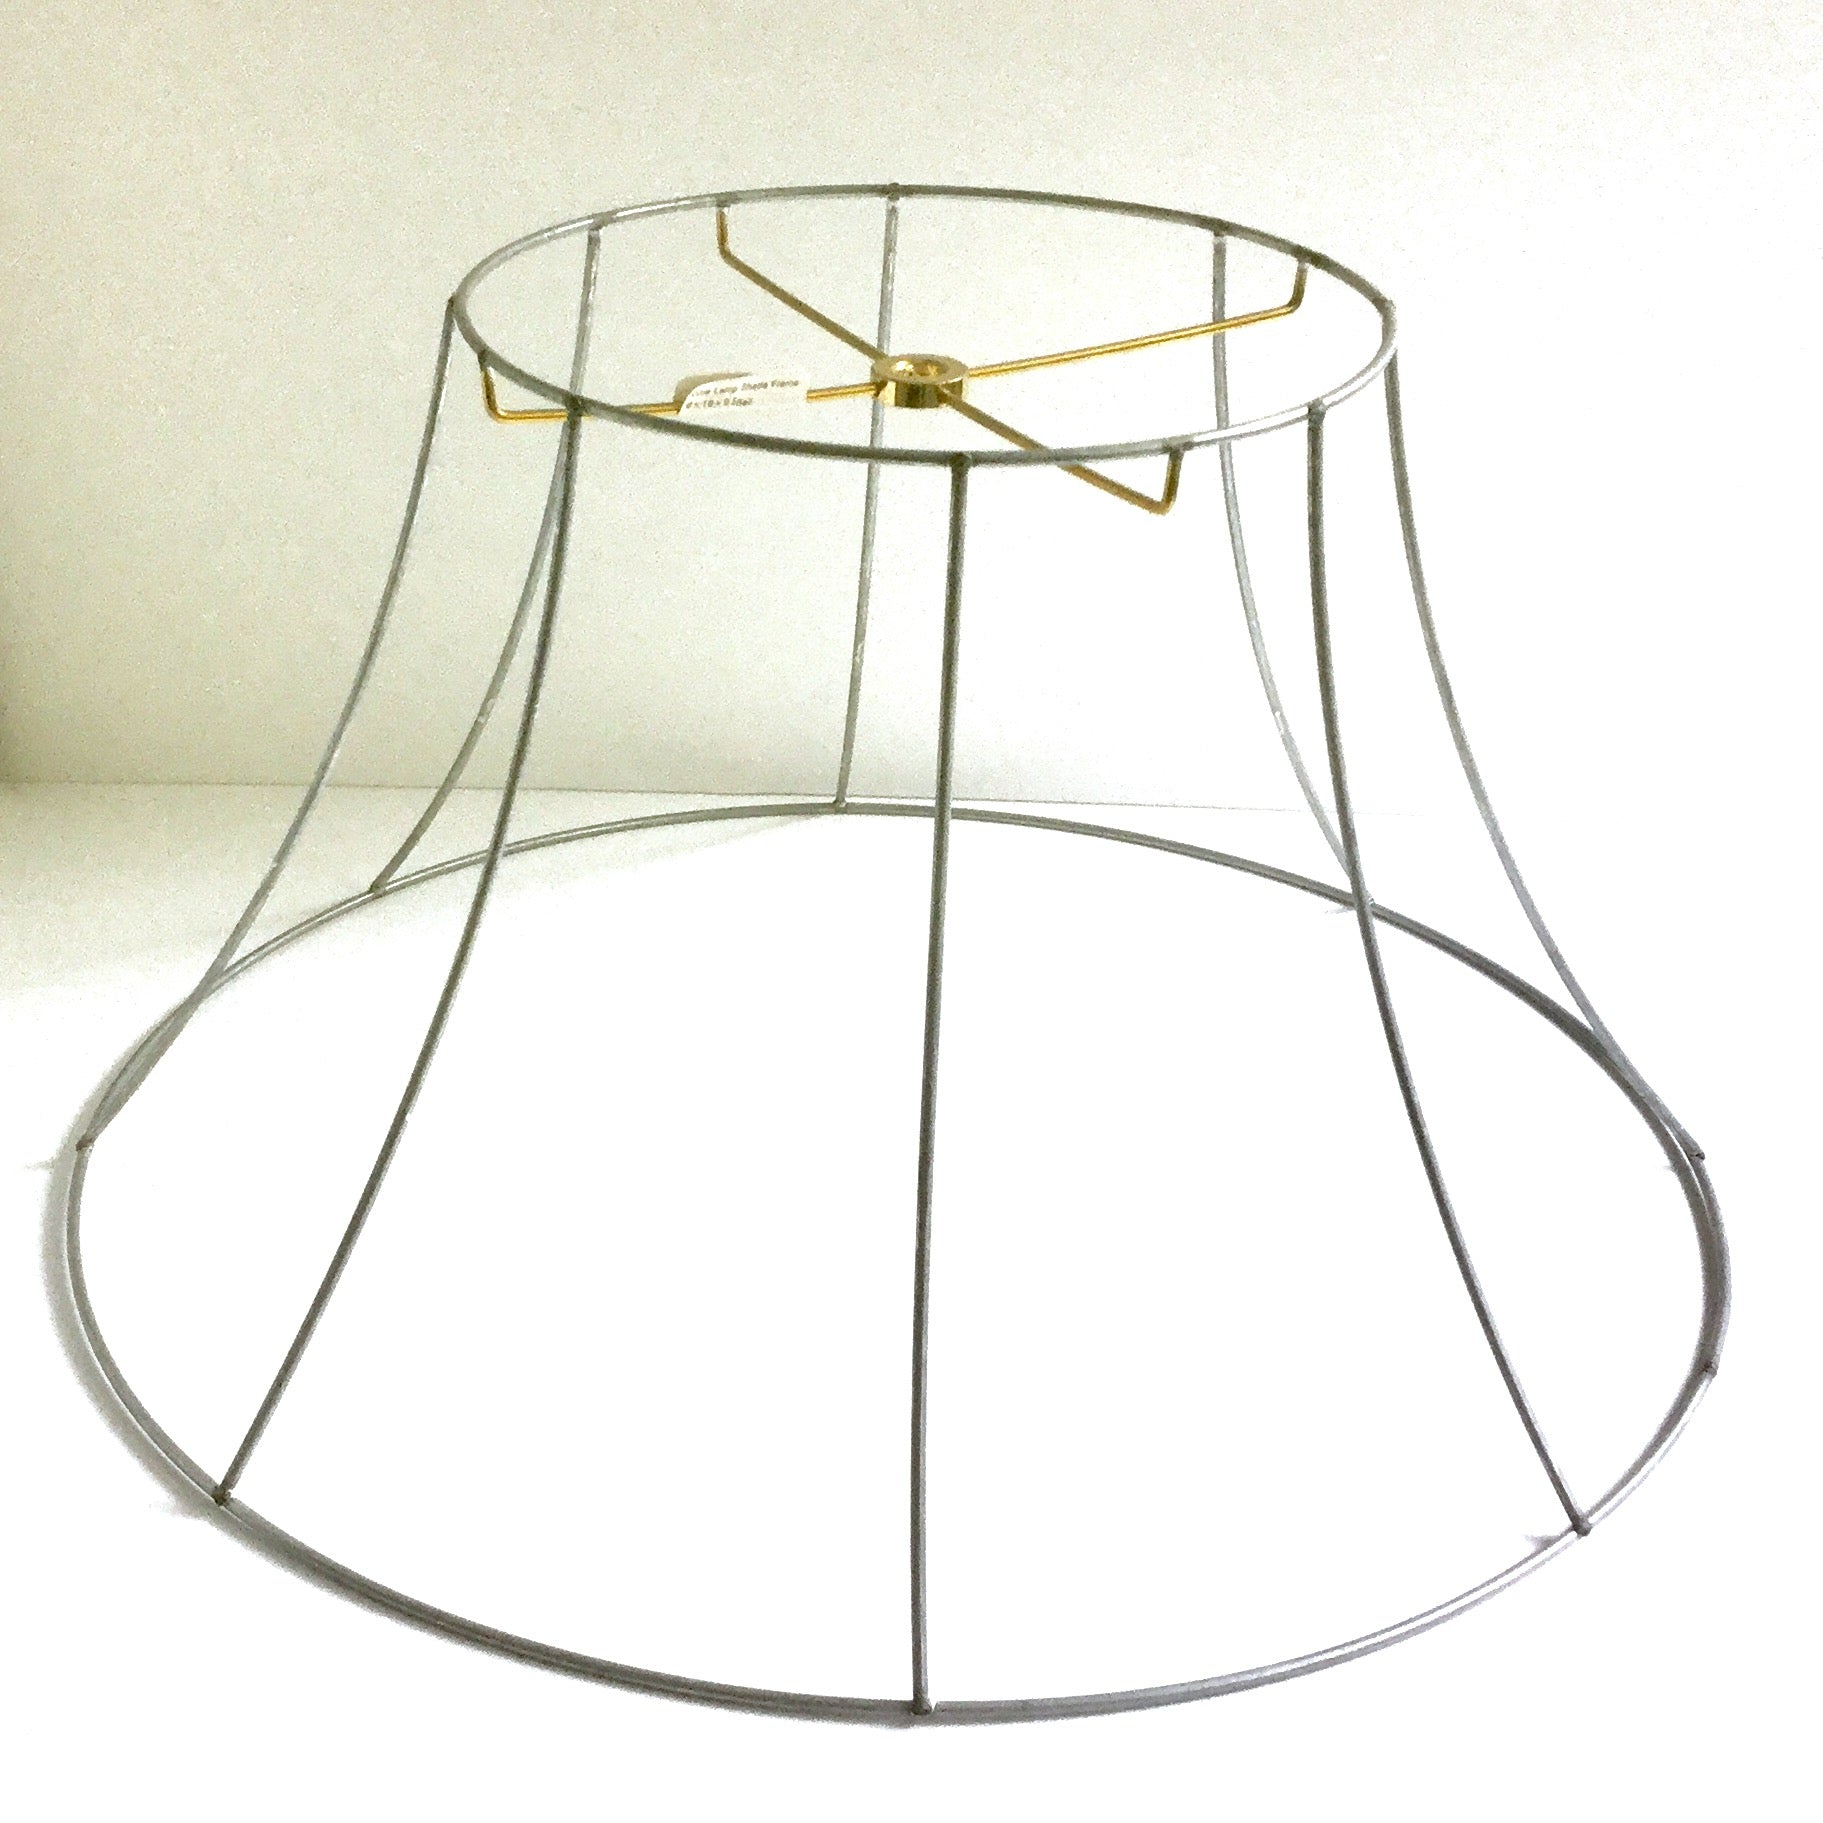 Wire lampshade frames wire center lamp shade frames wire rose mille rh rosemille com wire lampshade frames for sale wire lampshade frames south africa greentooth Choice Image